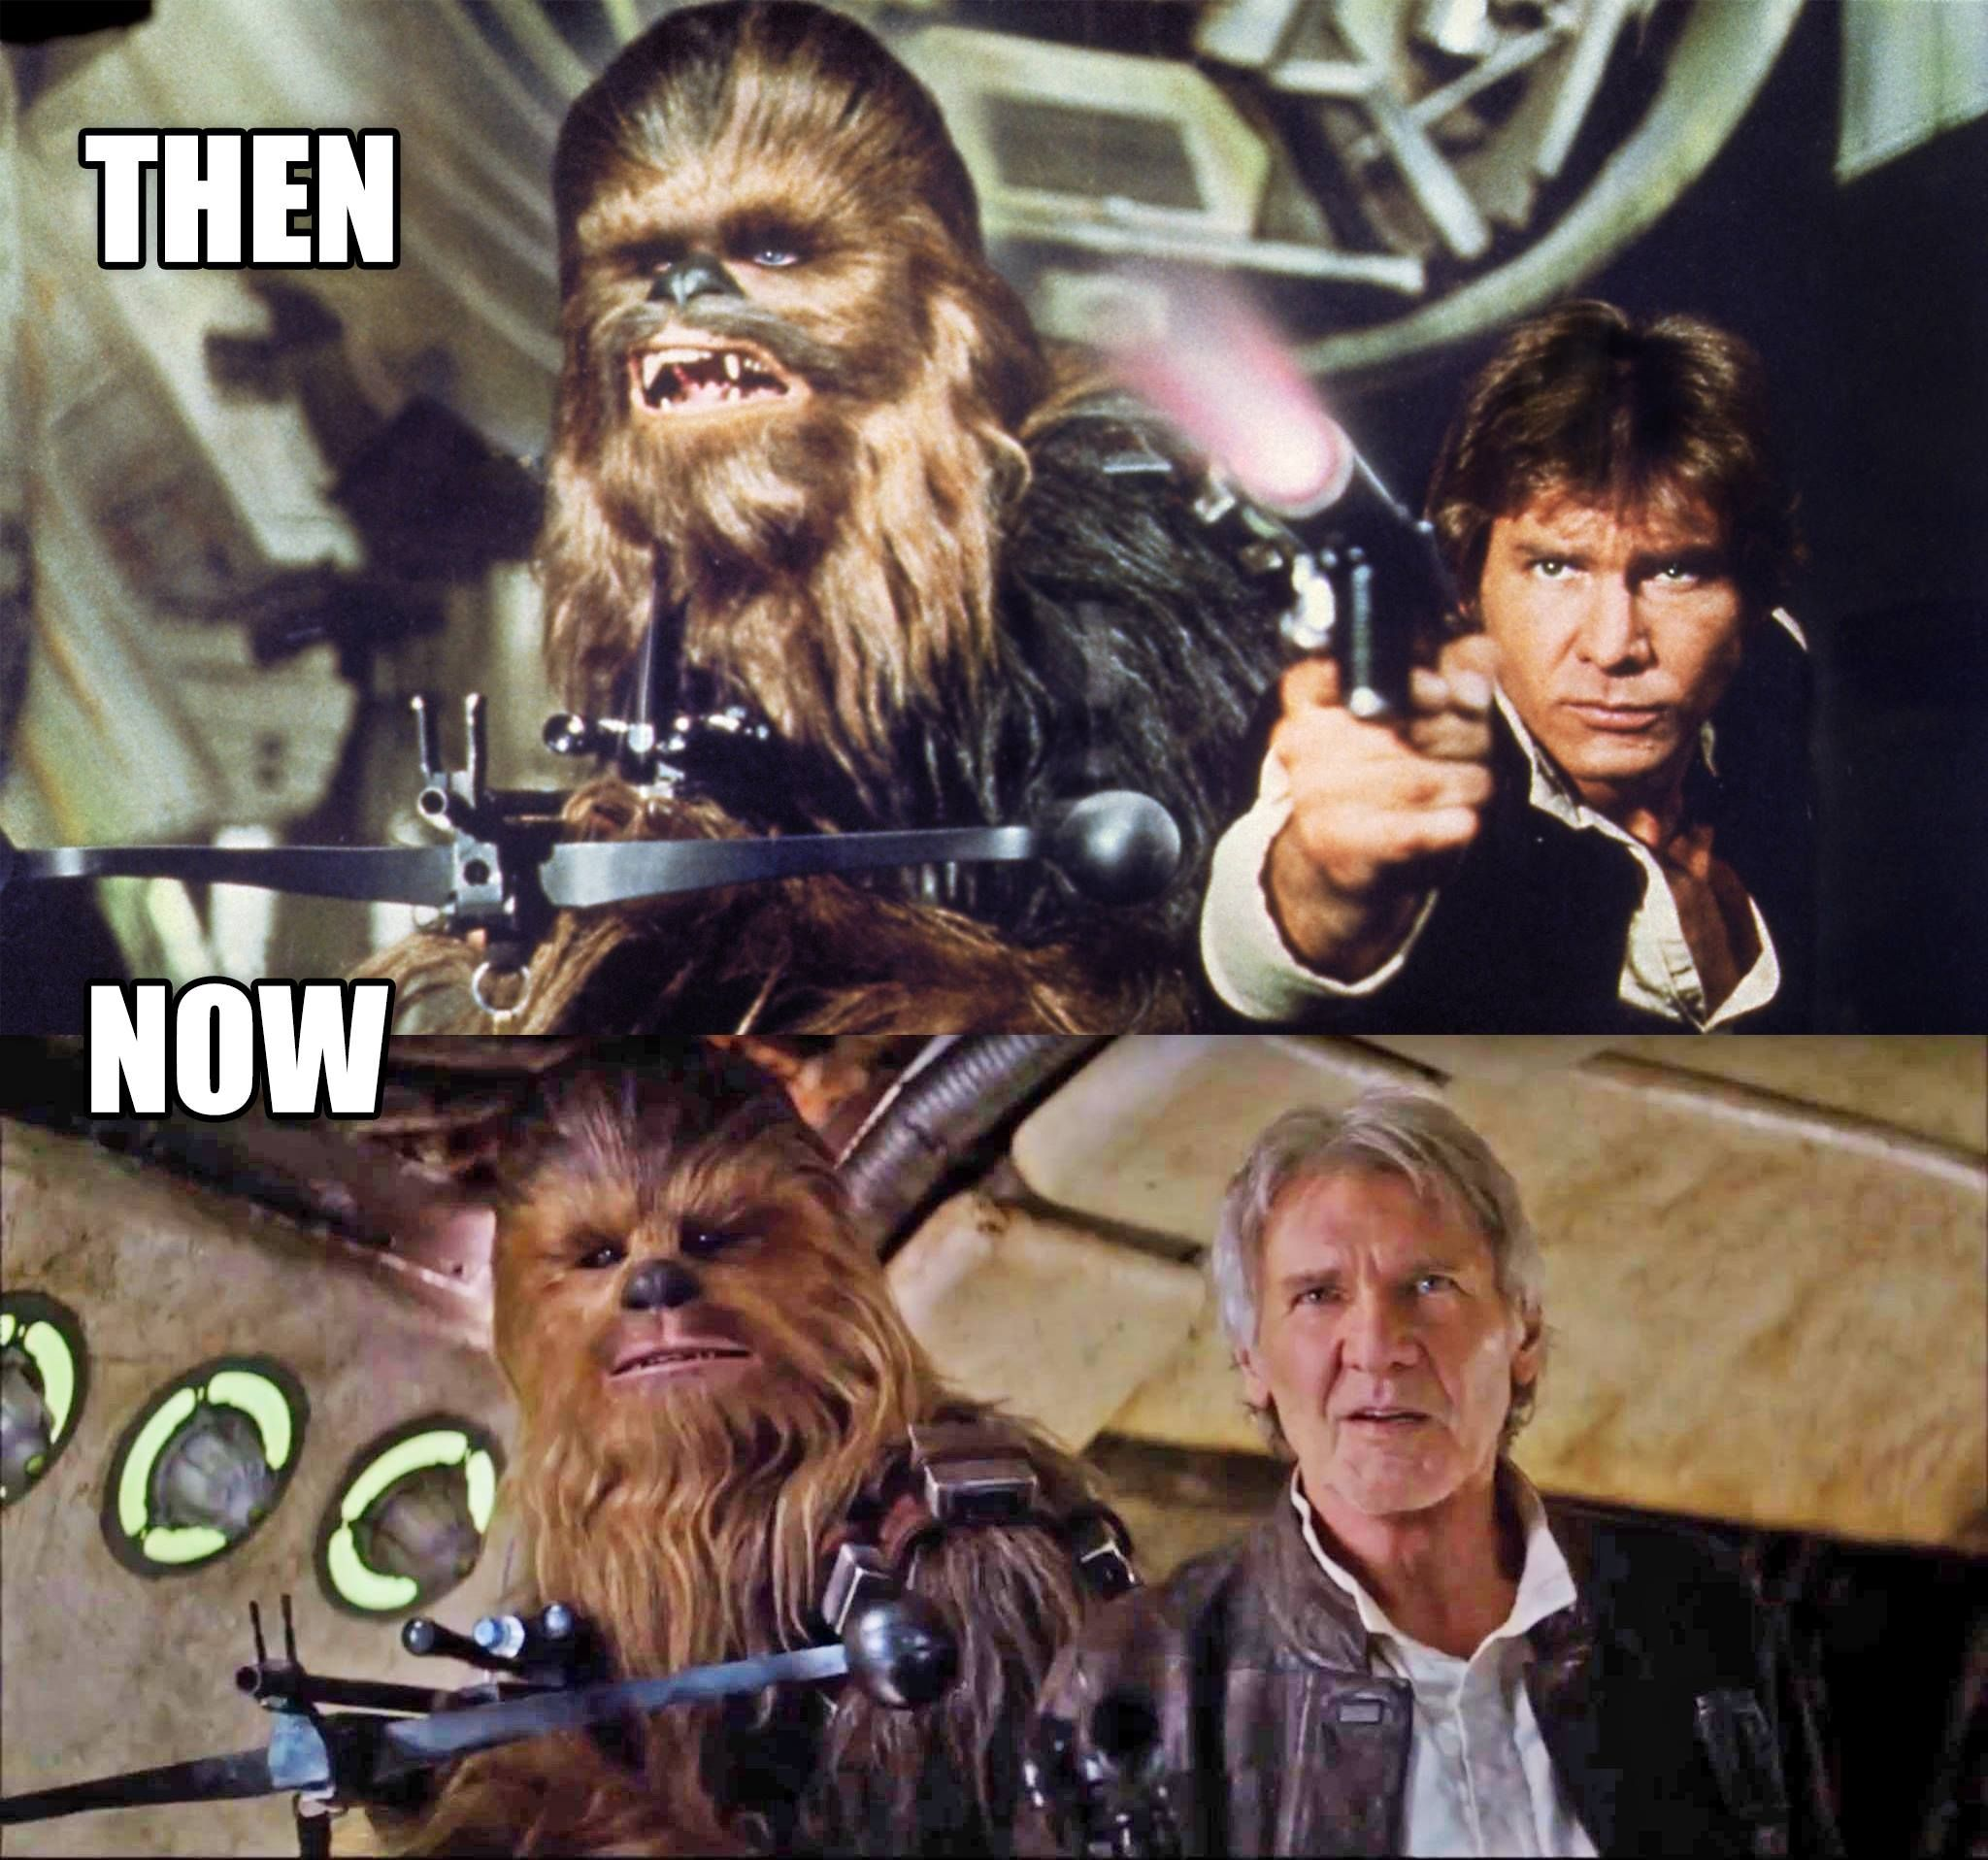 Whos Excited To See Han Solo & Chewbacca Together Again